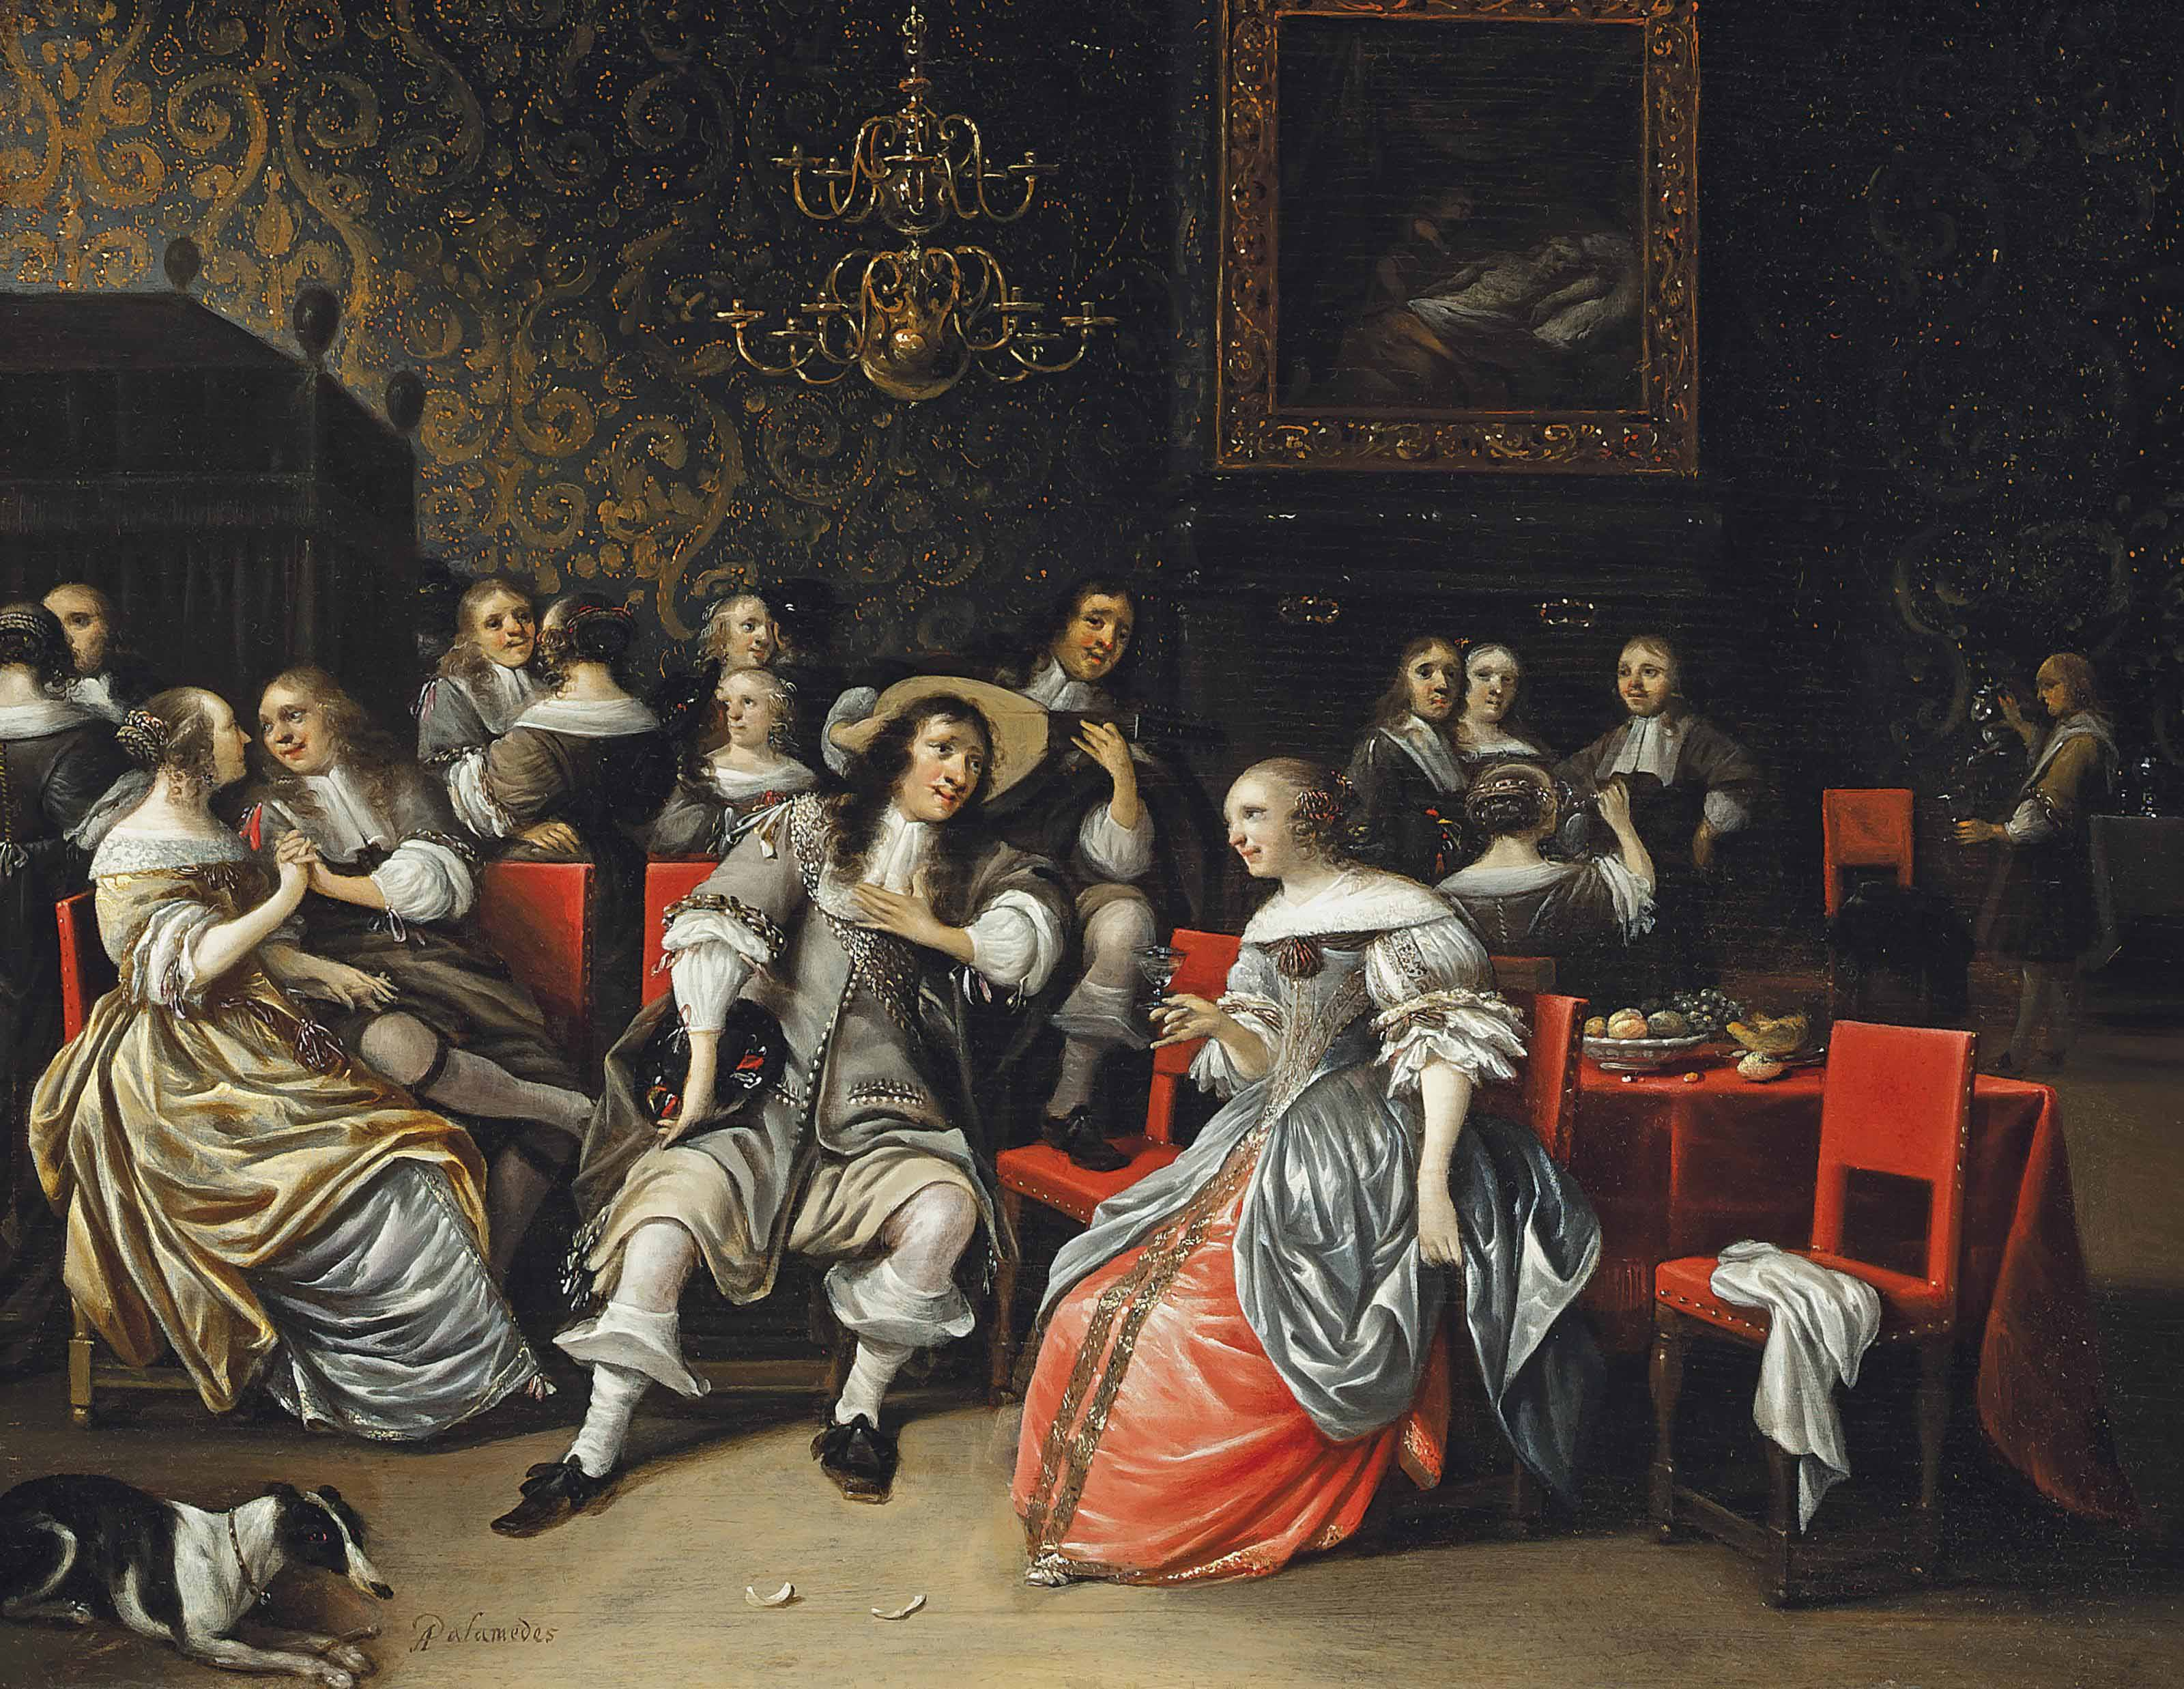 Elegant company drinking and music making in an interior